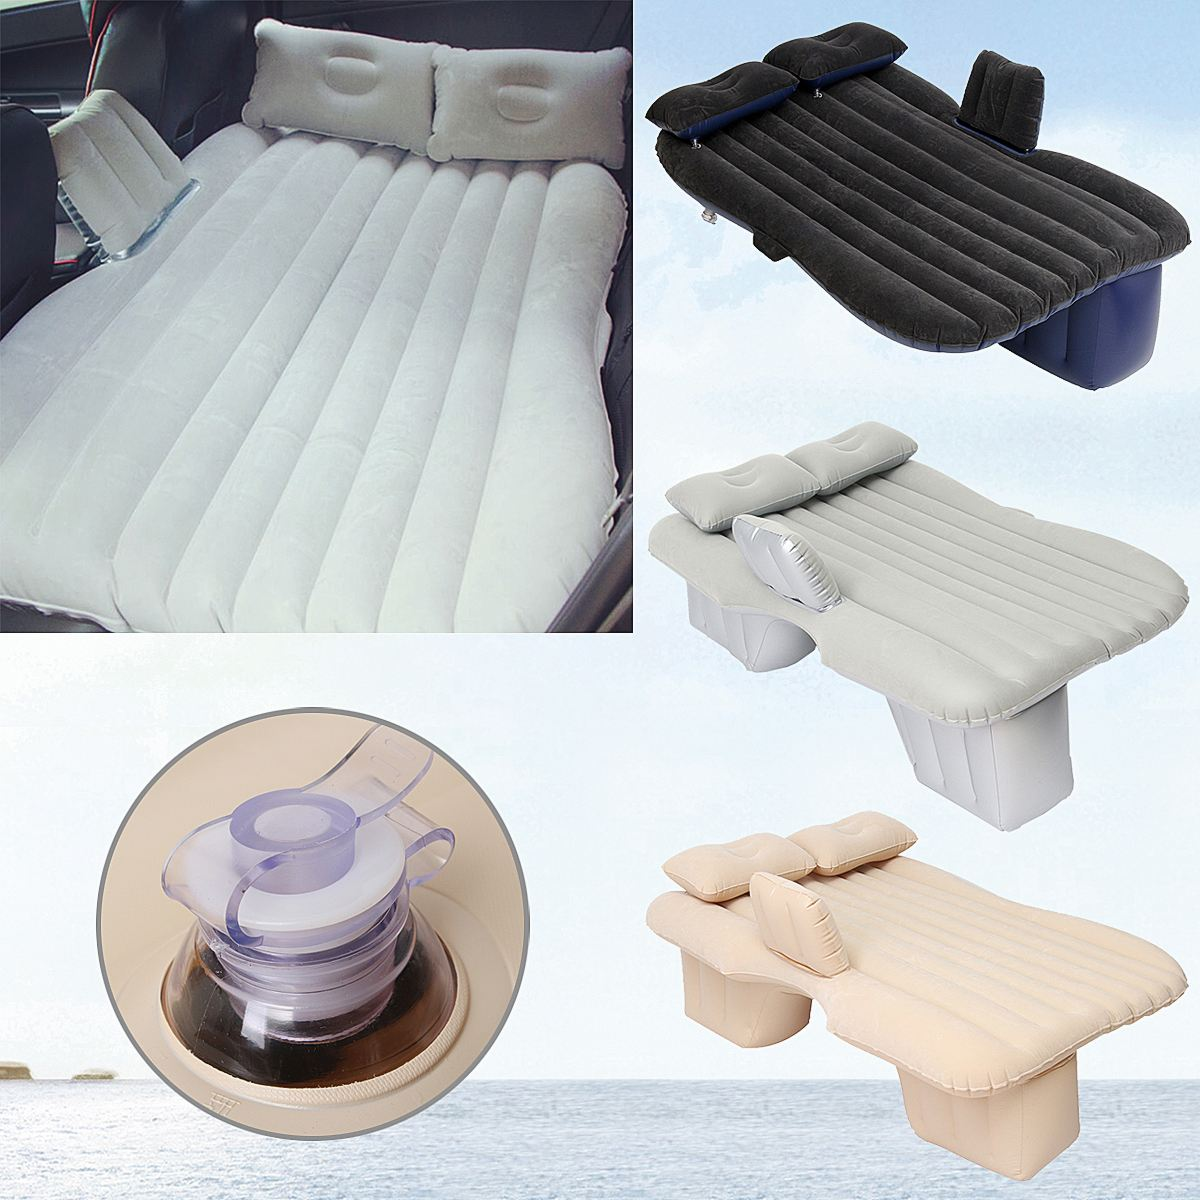 Good Quality Flocking Cloth Car Back Seat Cover Air Mattress Travel Bed Inflatable Mattress Air Bed Inflatable Bed Camping Mat hot sales selling car back seat cover car air mattress travel bed inflatable mattress air bed good quality inflatable car bed